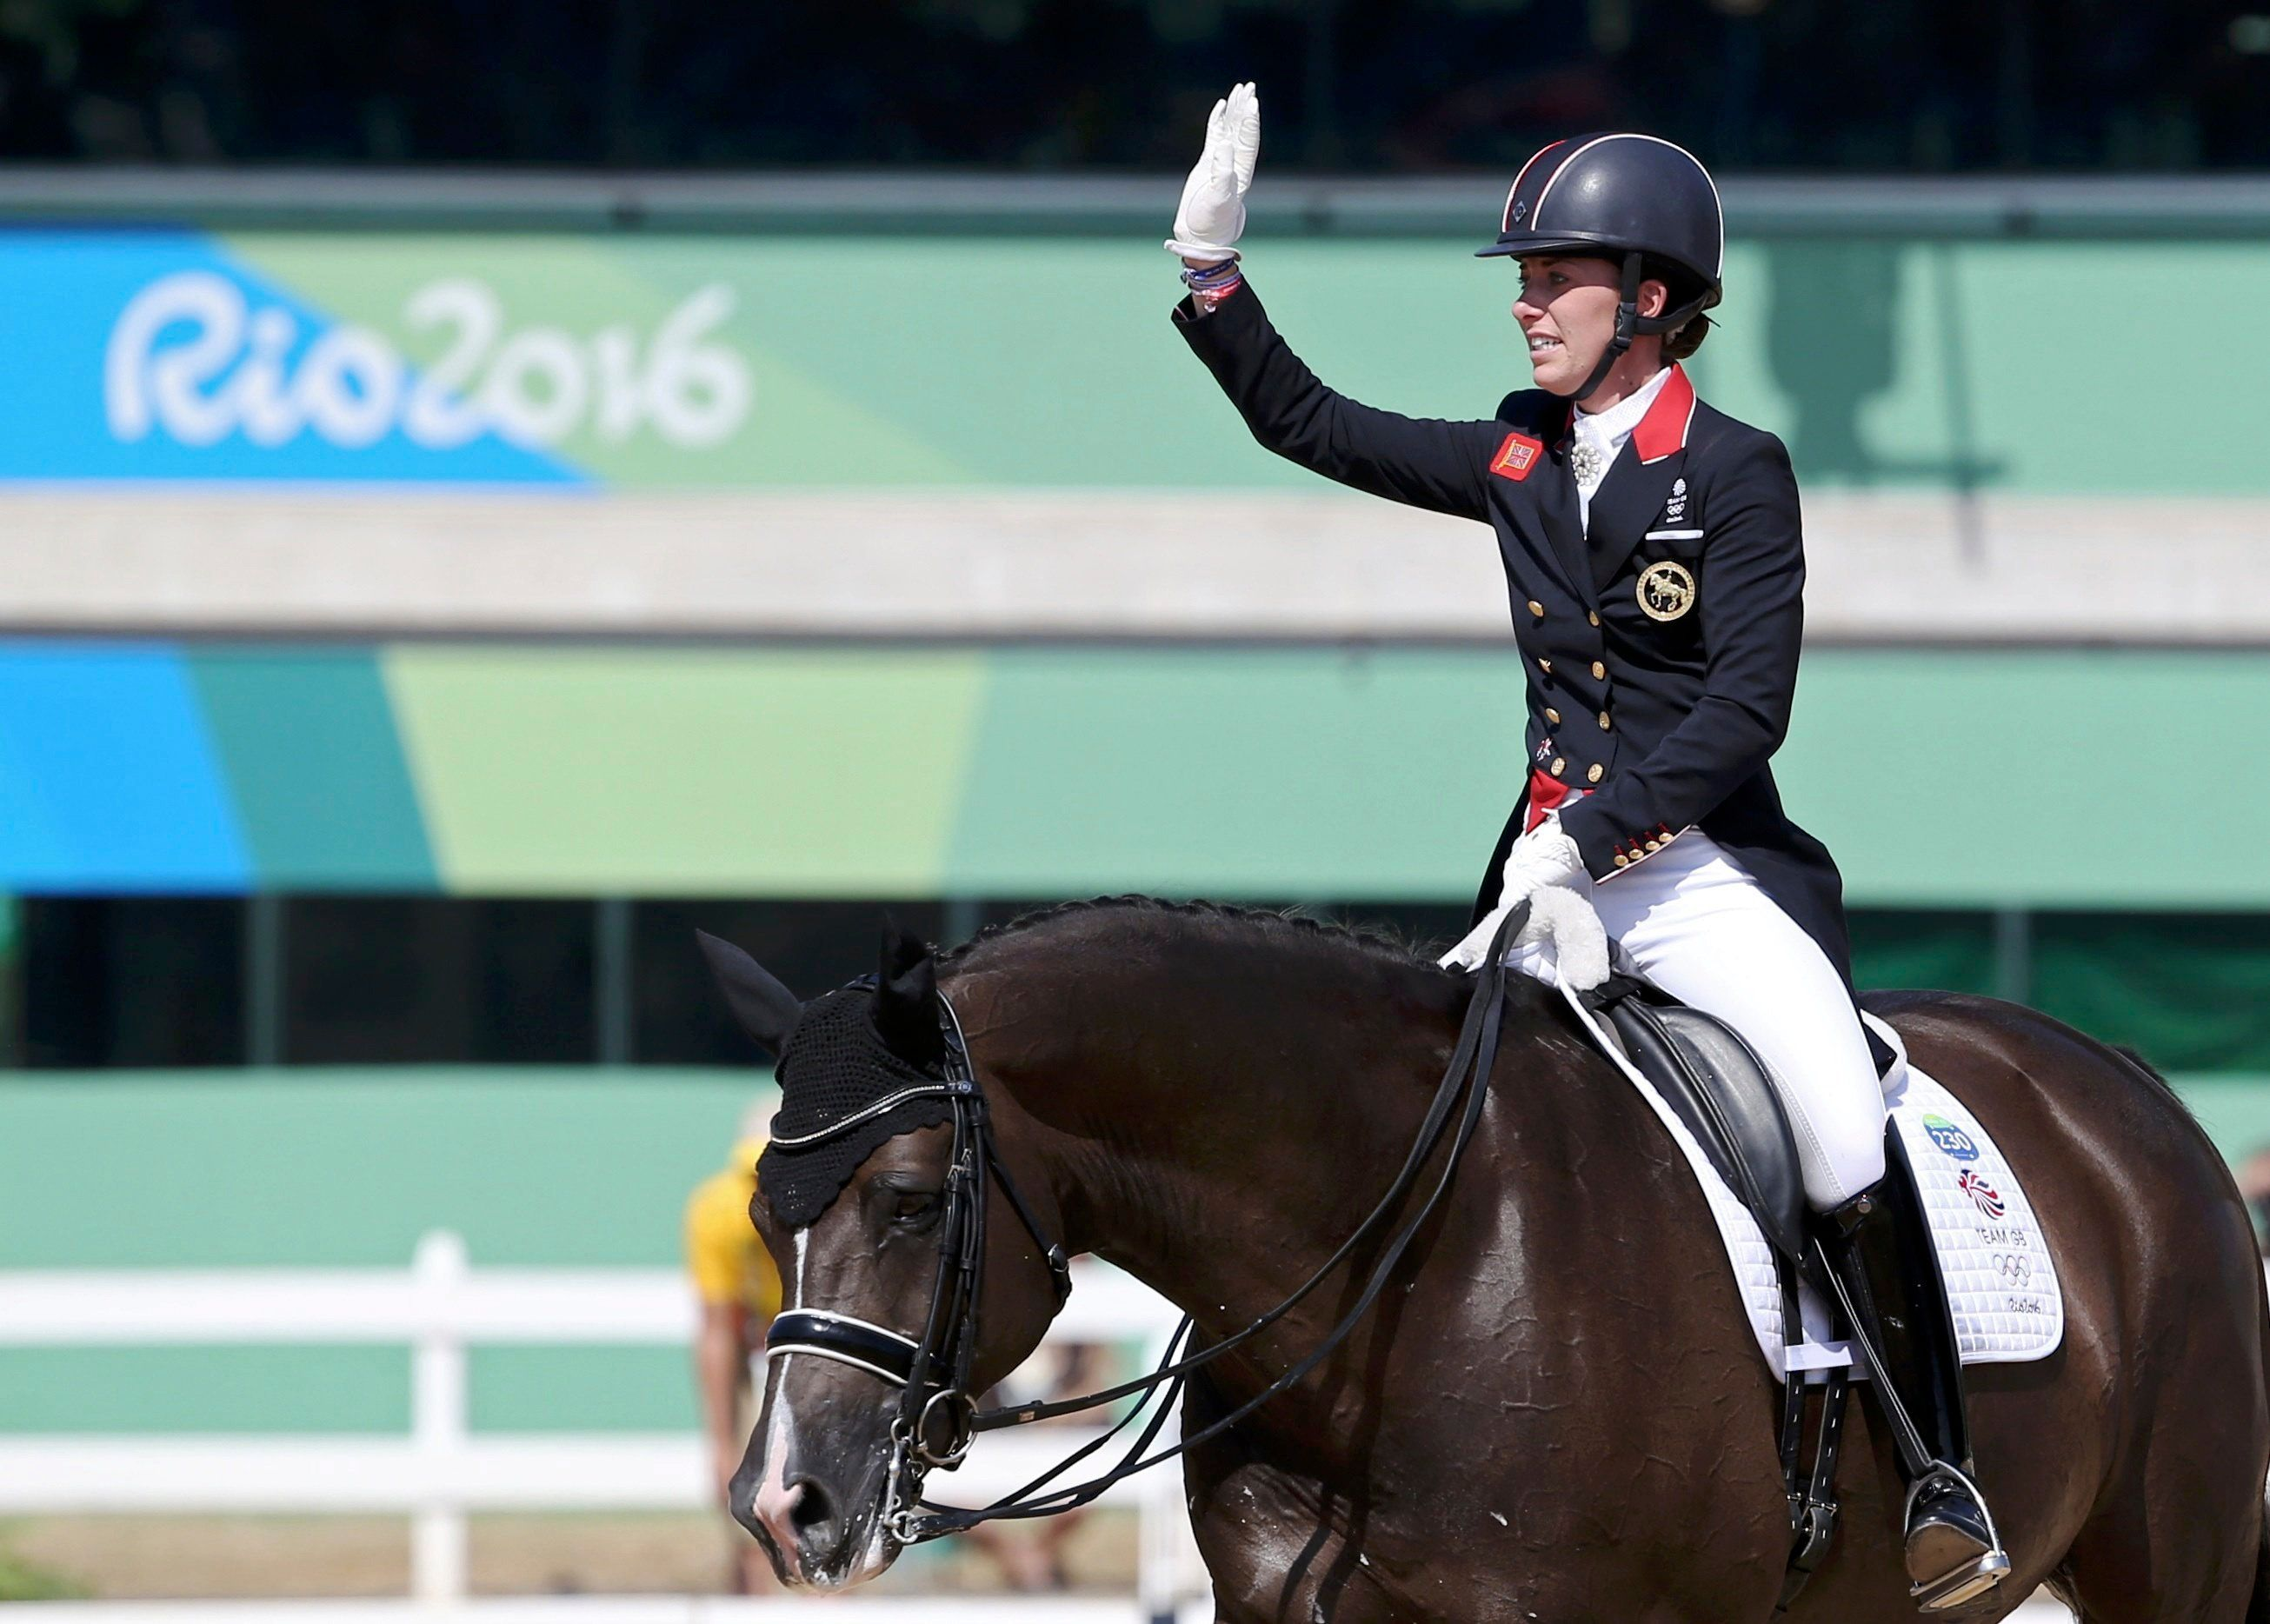 Charlotte Dujardin during her gold-winning performance (above and